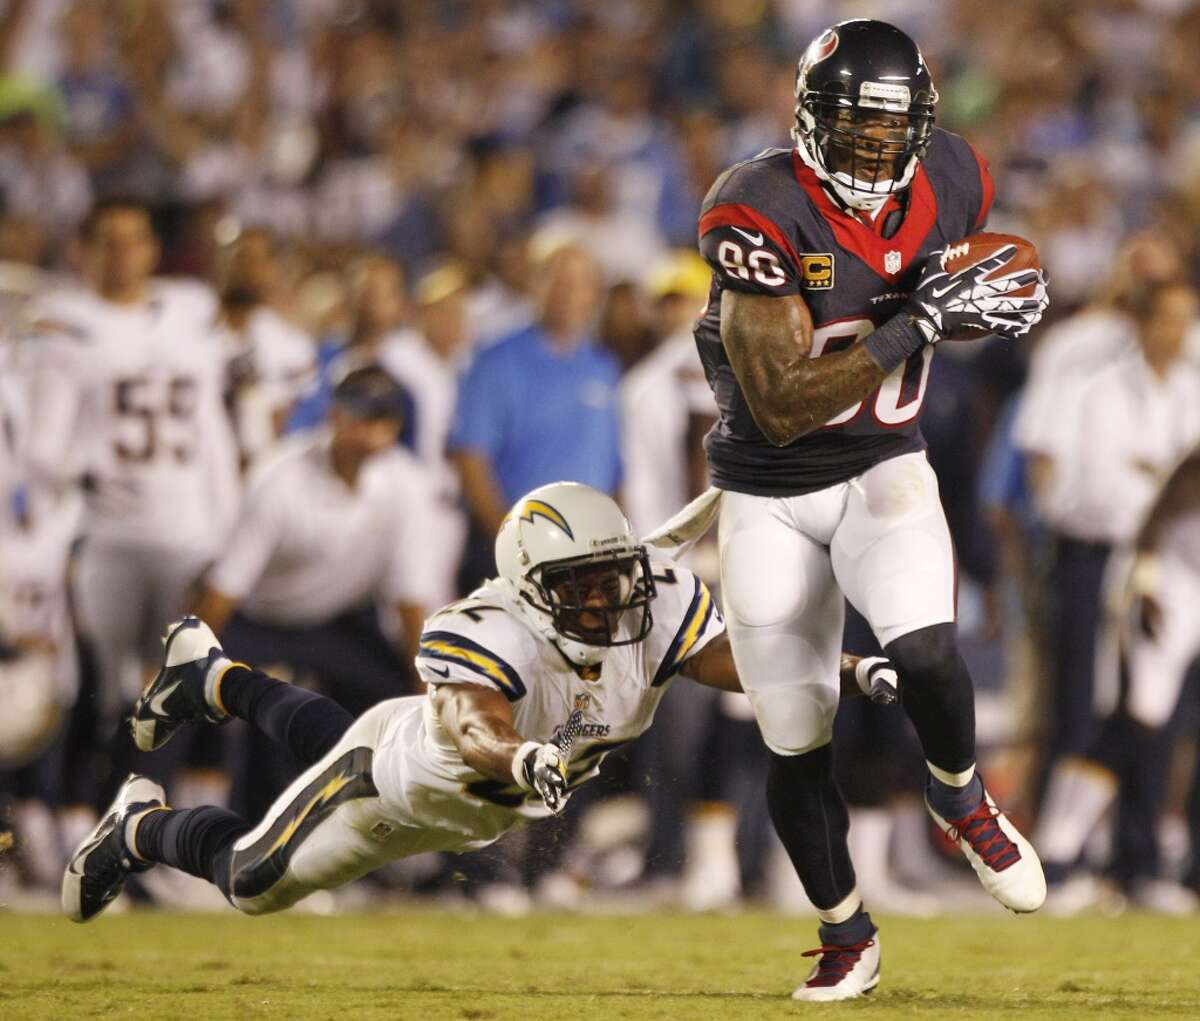 #9: 2013 at San Diego Chargers Stats: 12 catches, 146 yards, 0 TDs Significance: His final catch allowed the Texans to convert a late third-down, setting up Randy Bullock's last-second game-winning field goal in a 31-28 season-opening victory.